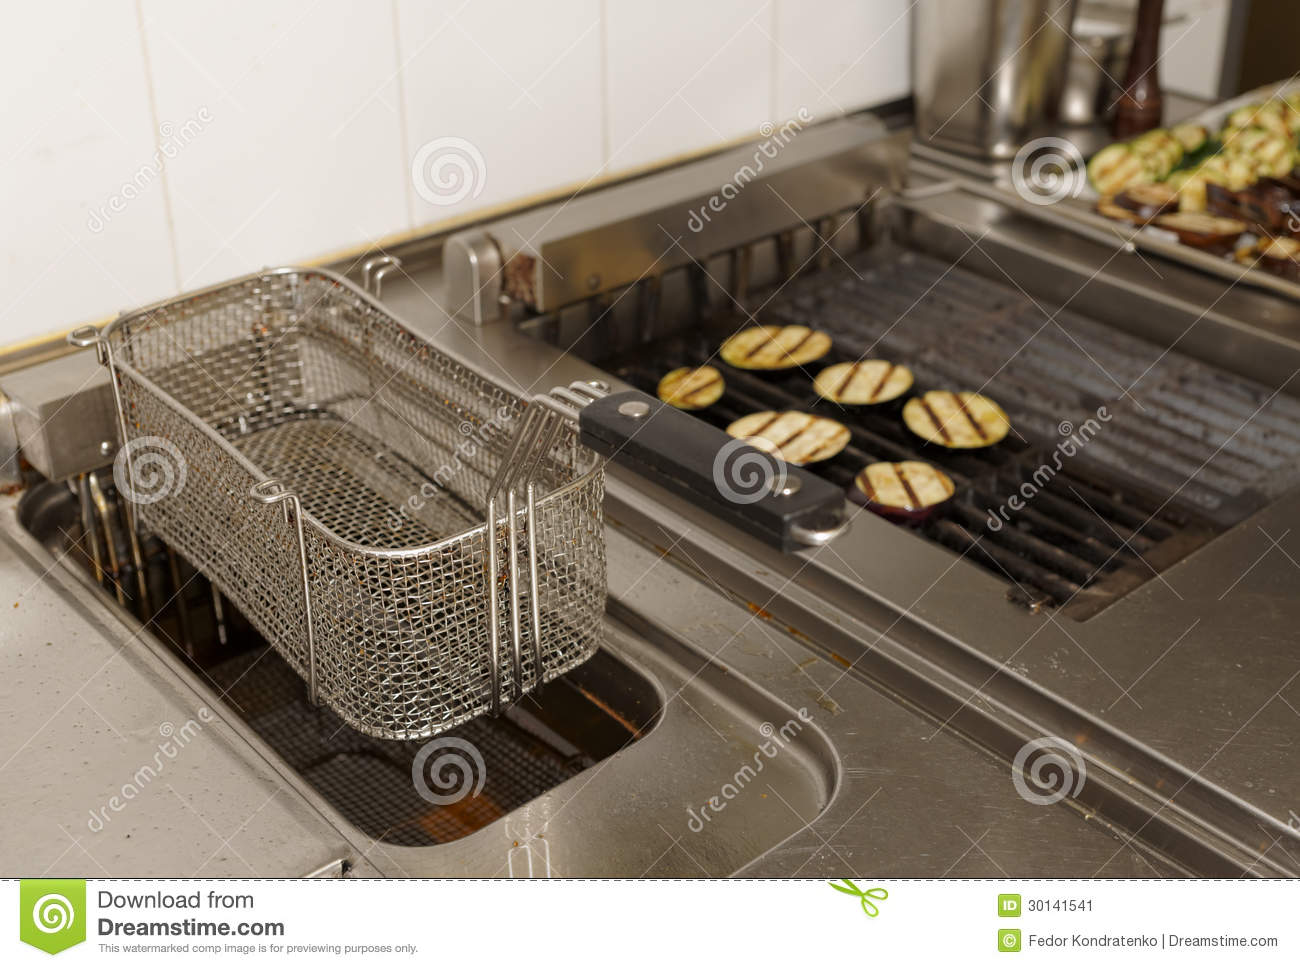 Restaurant Kitchen Grill deep fryer and grill on commercial kitchen stock image - image